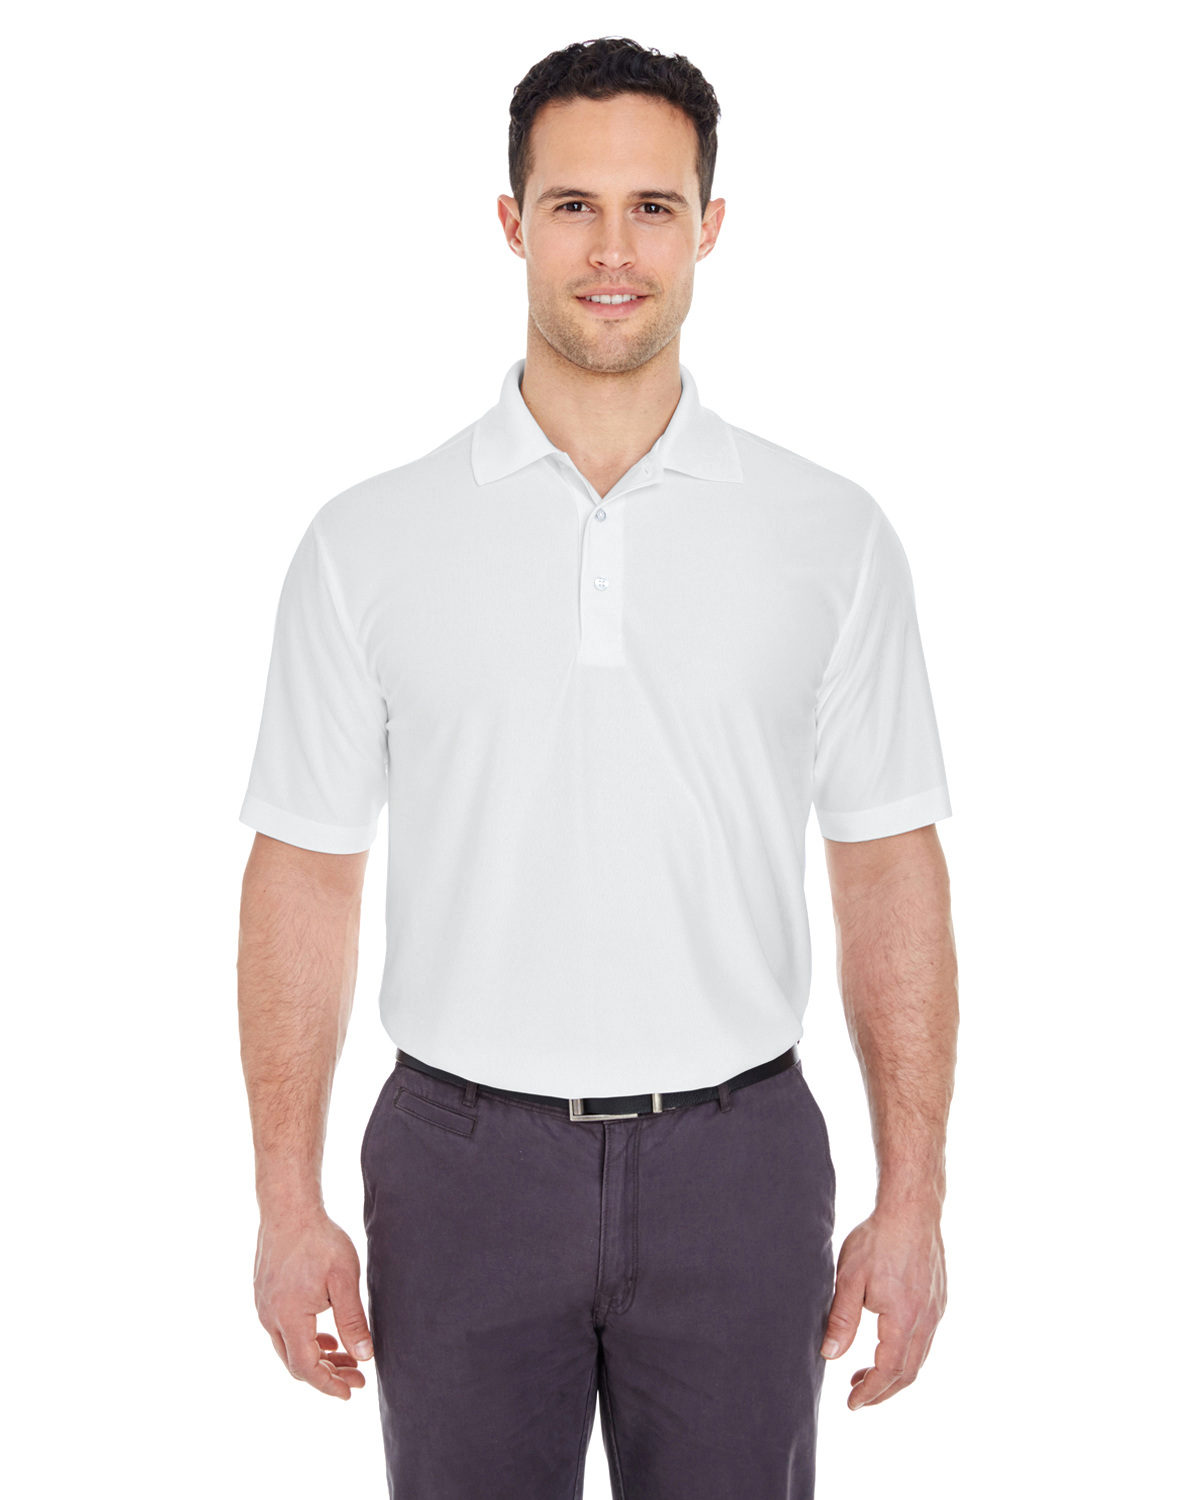 Men's Tall Cool & Dry Elite Performance Polo